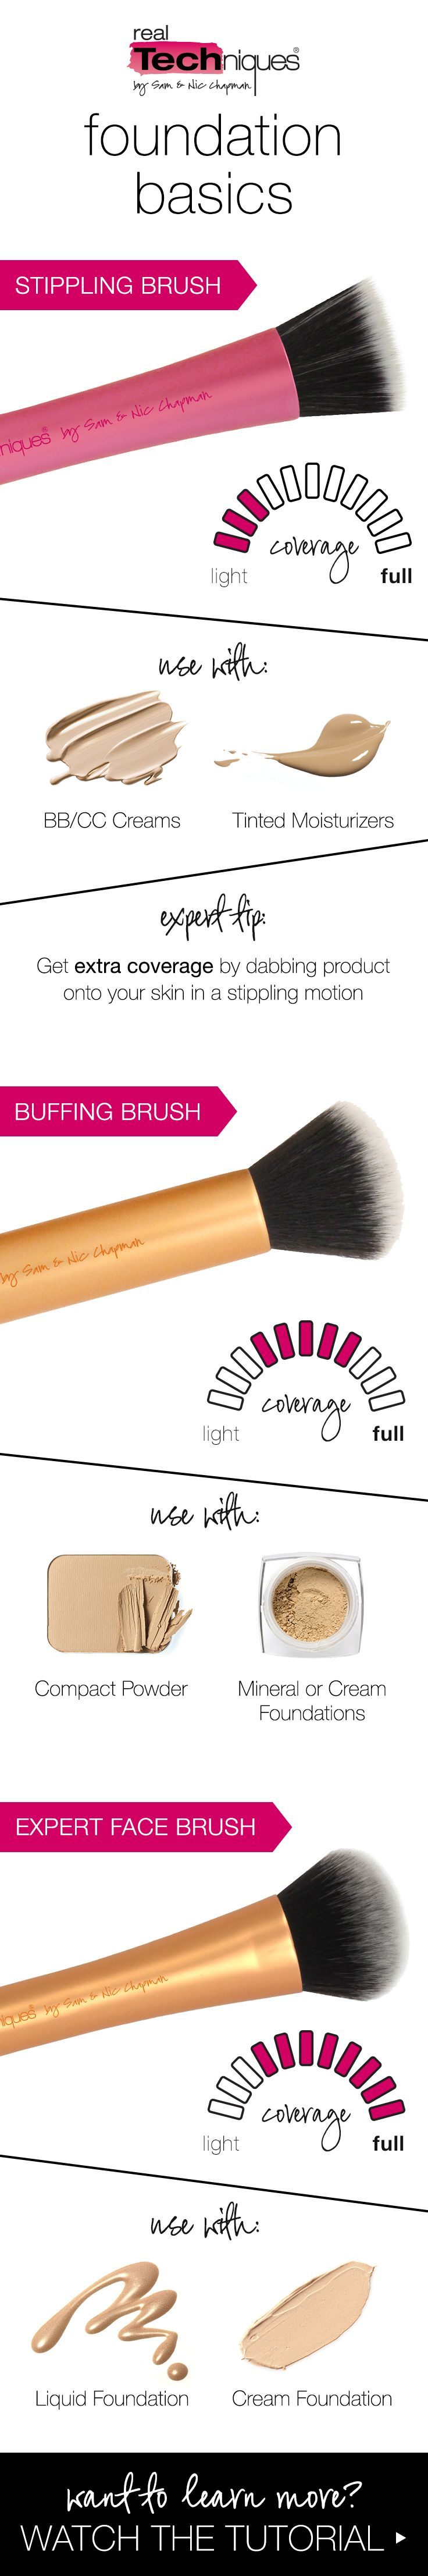 Real Techniques brushes makeup                                                                                                                                                                                 More